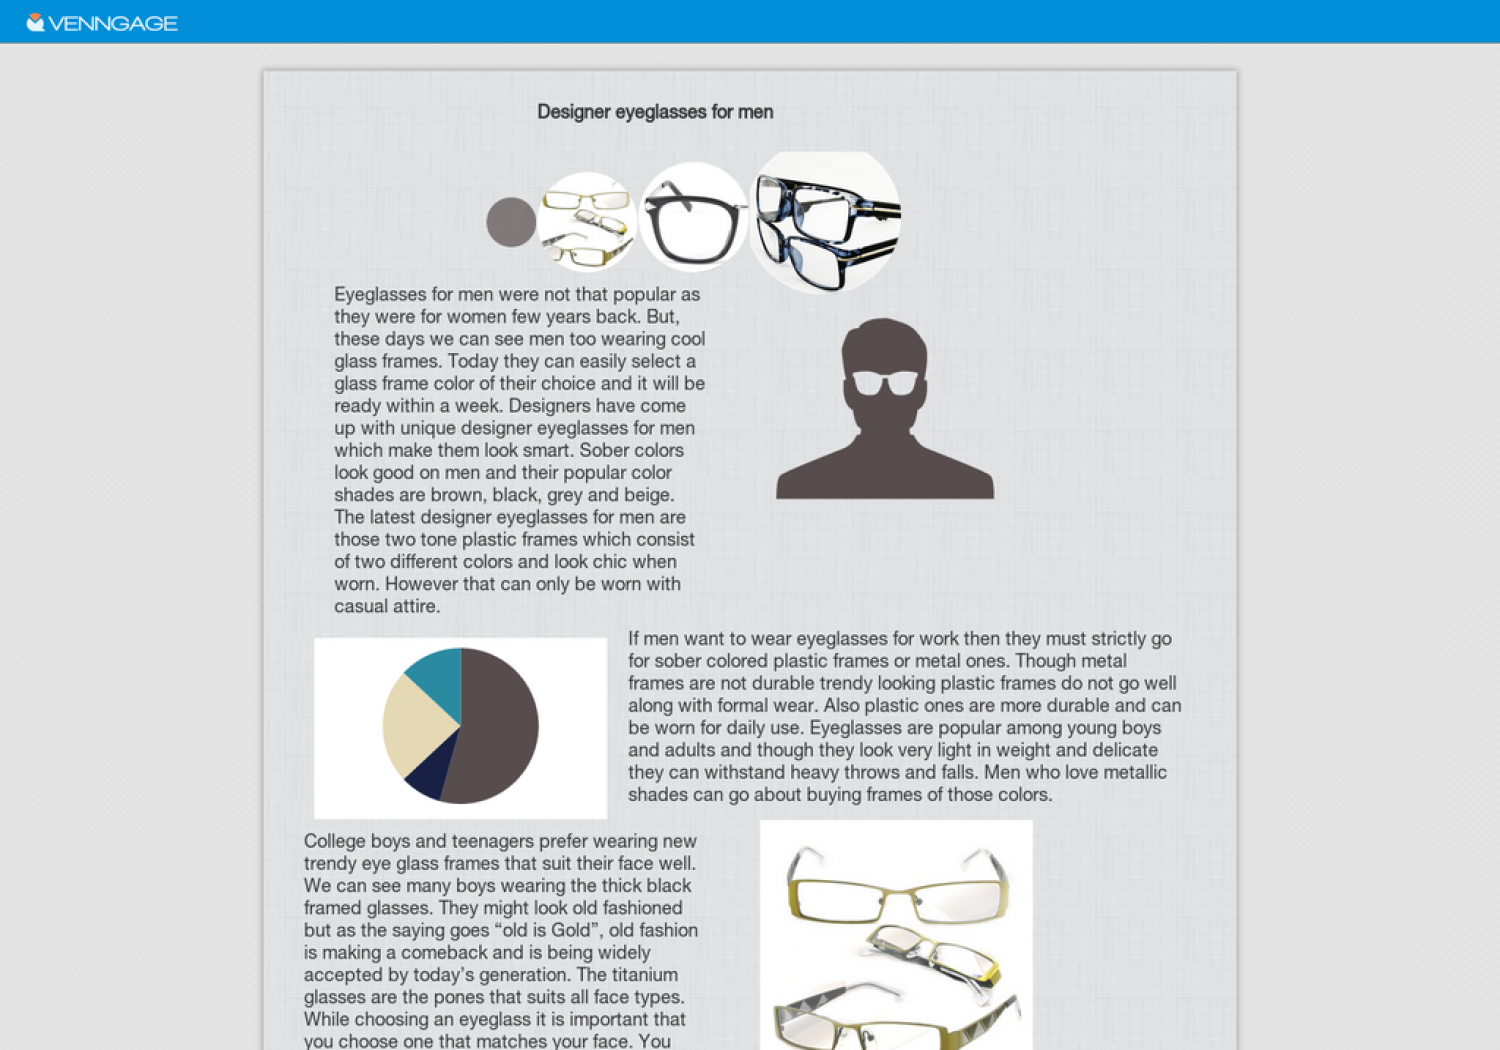 Designer eyeglasses for men Infographic